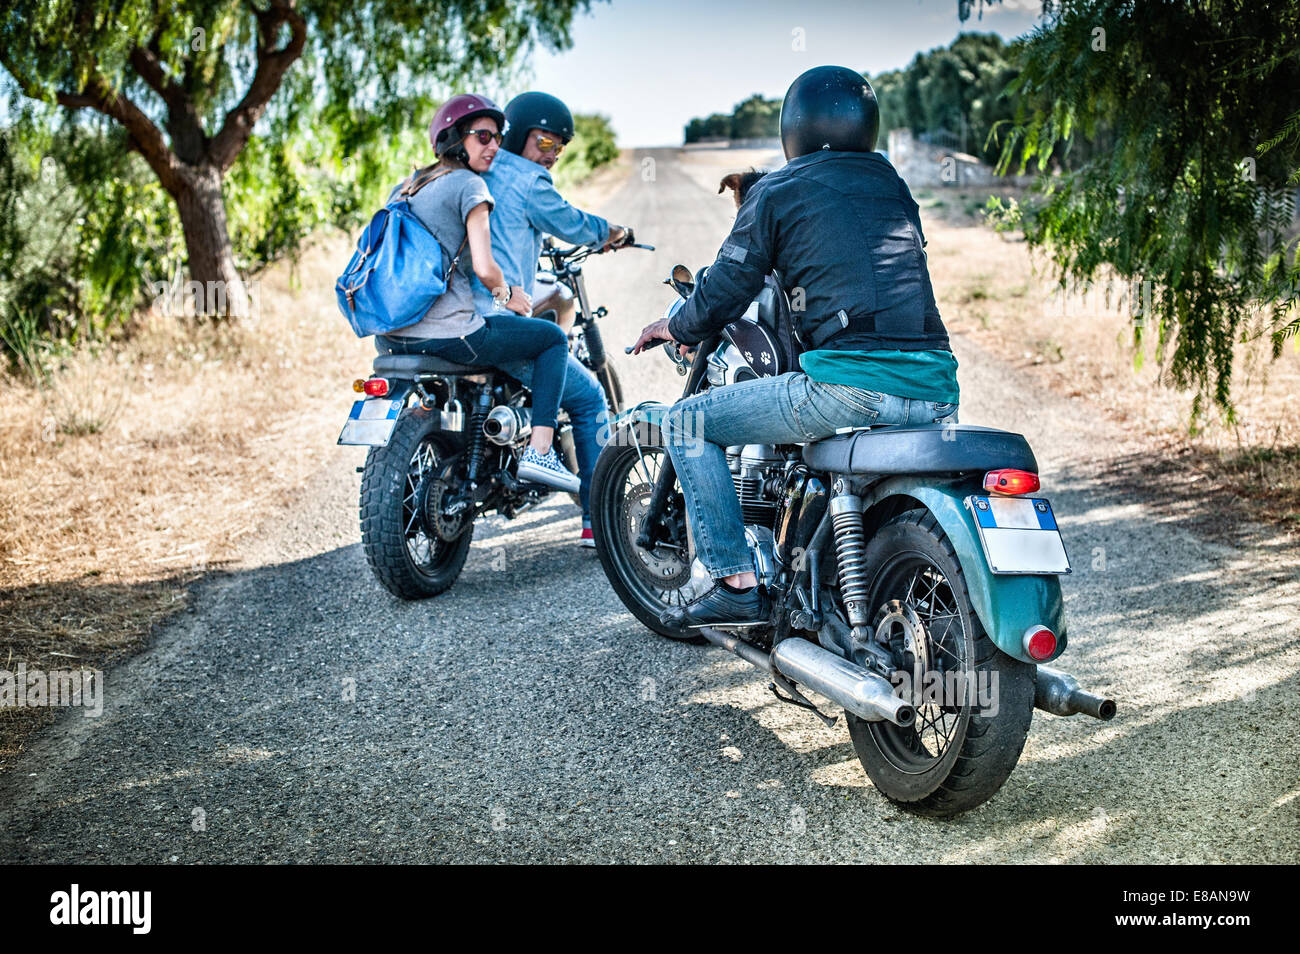 Three friends and one dog on motorcycles, Cagliari, Sardinia, Italy - Stock Image